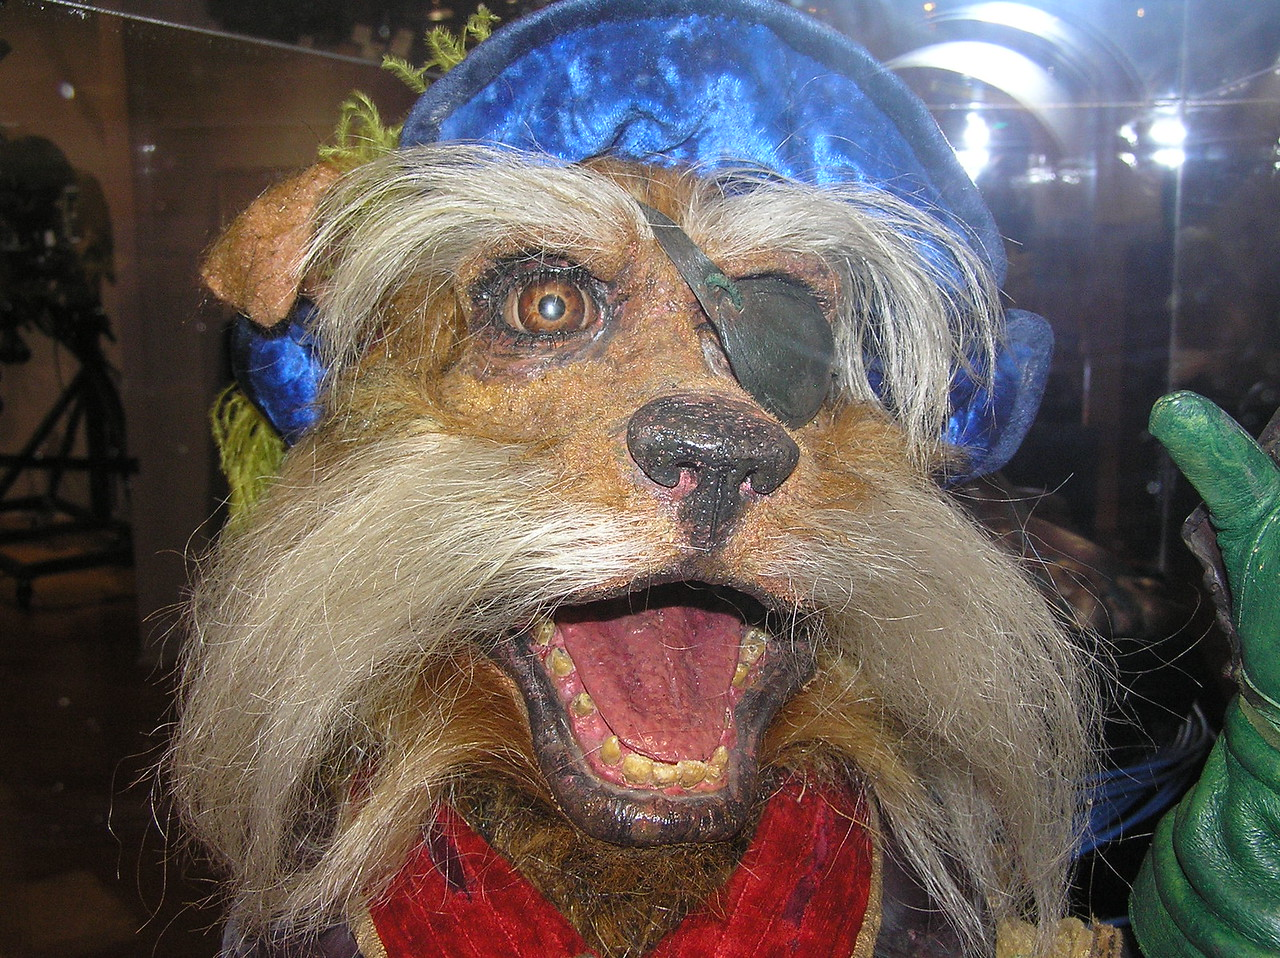 Sir Didymus close-up